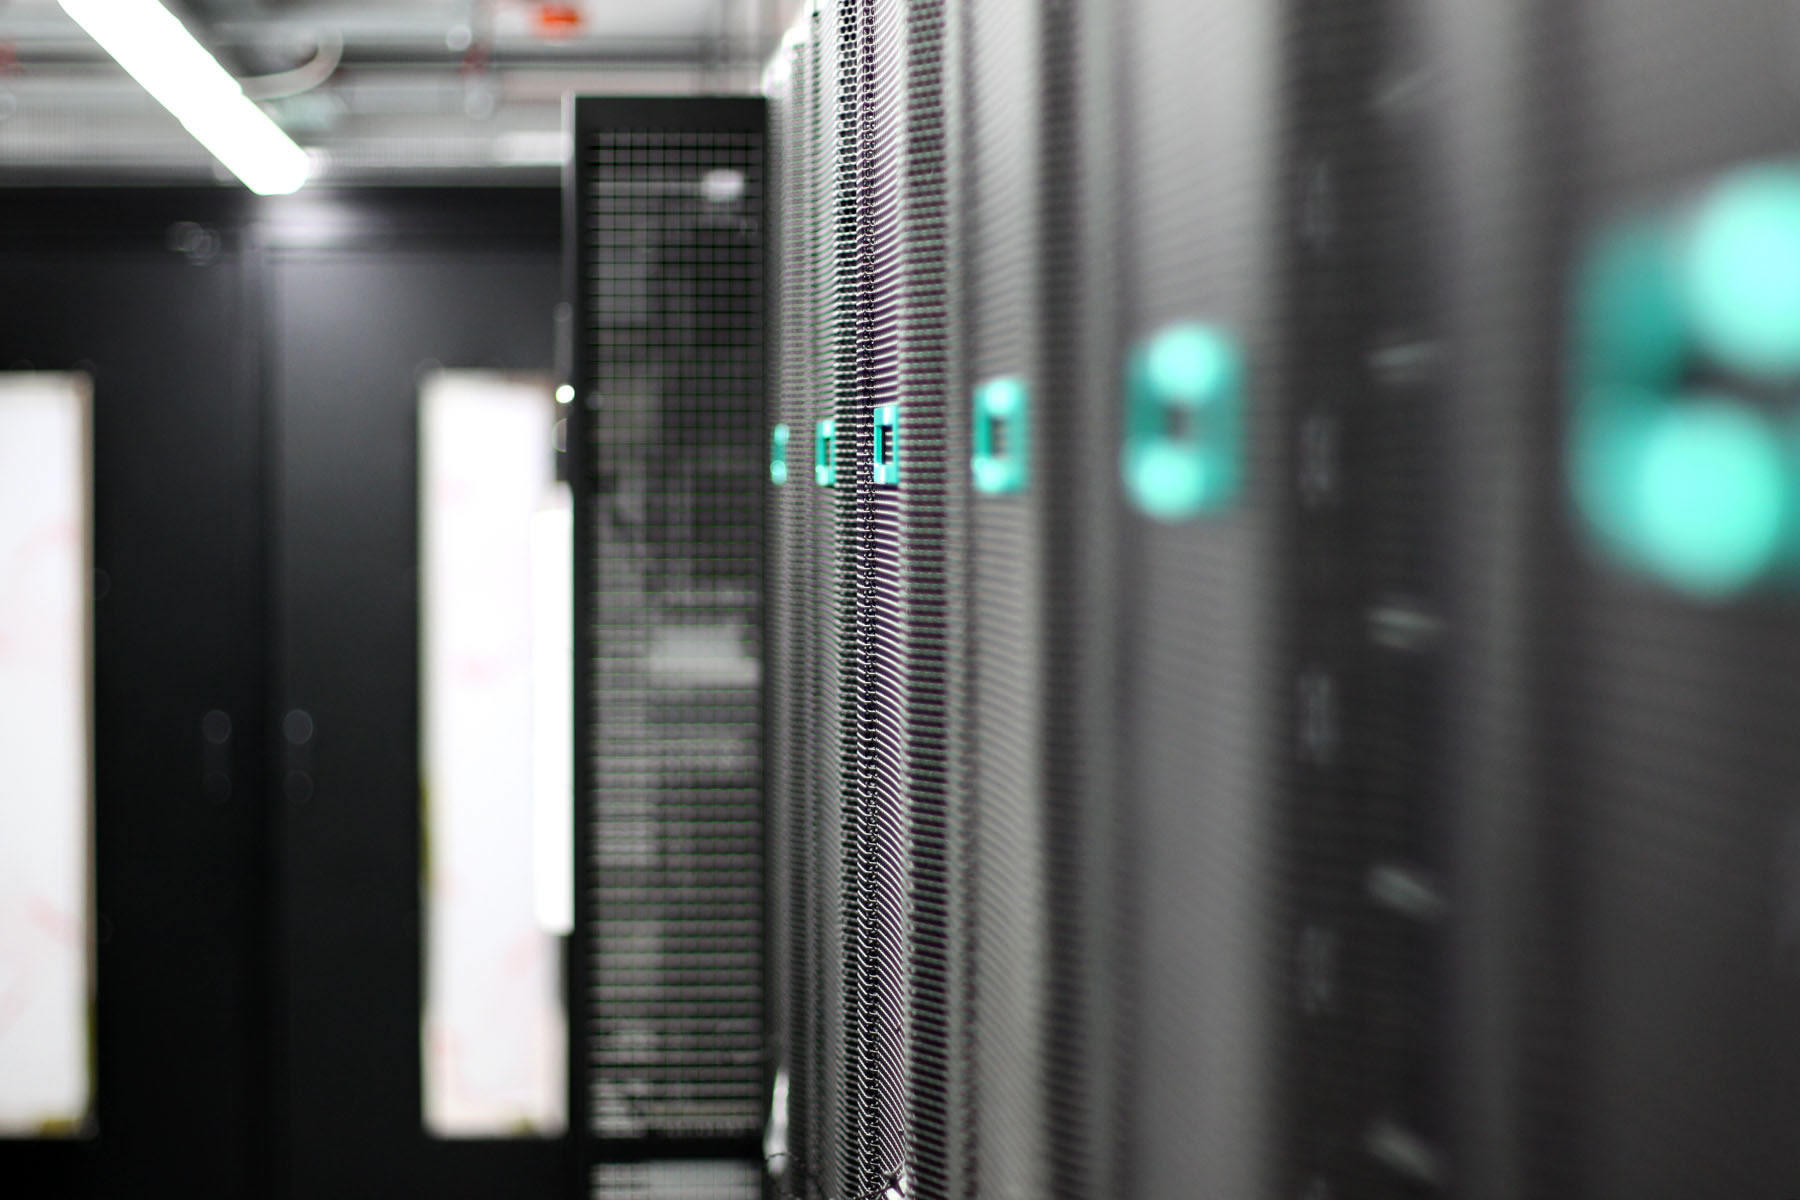 Where are cloud servers located?